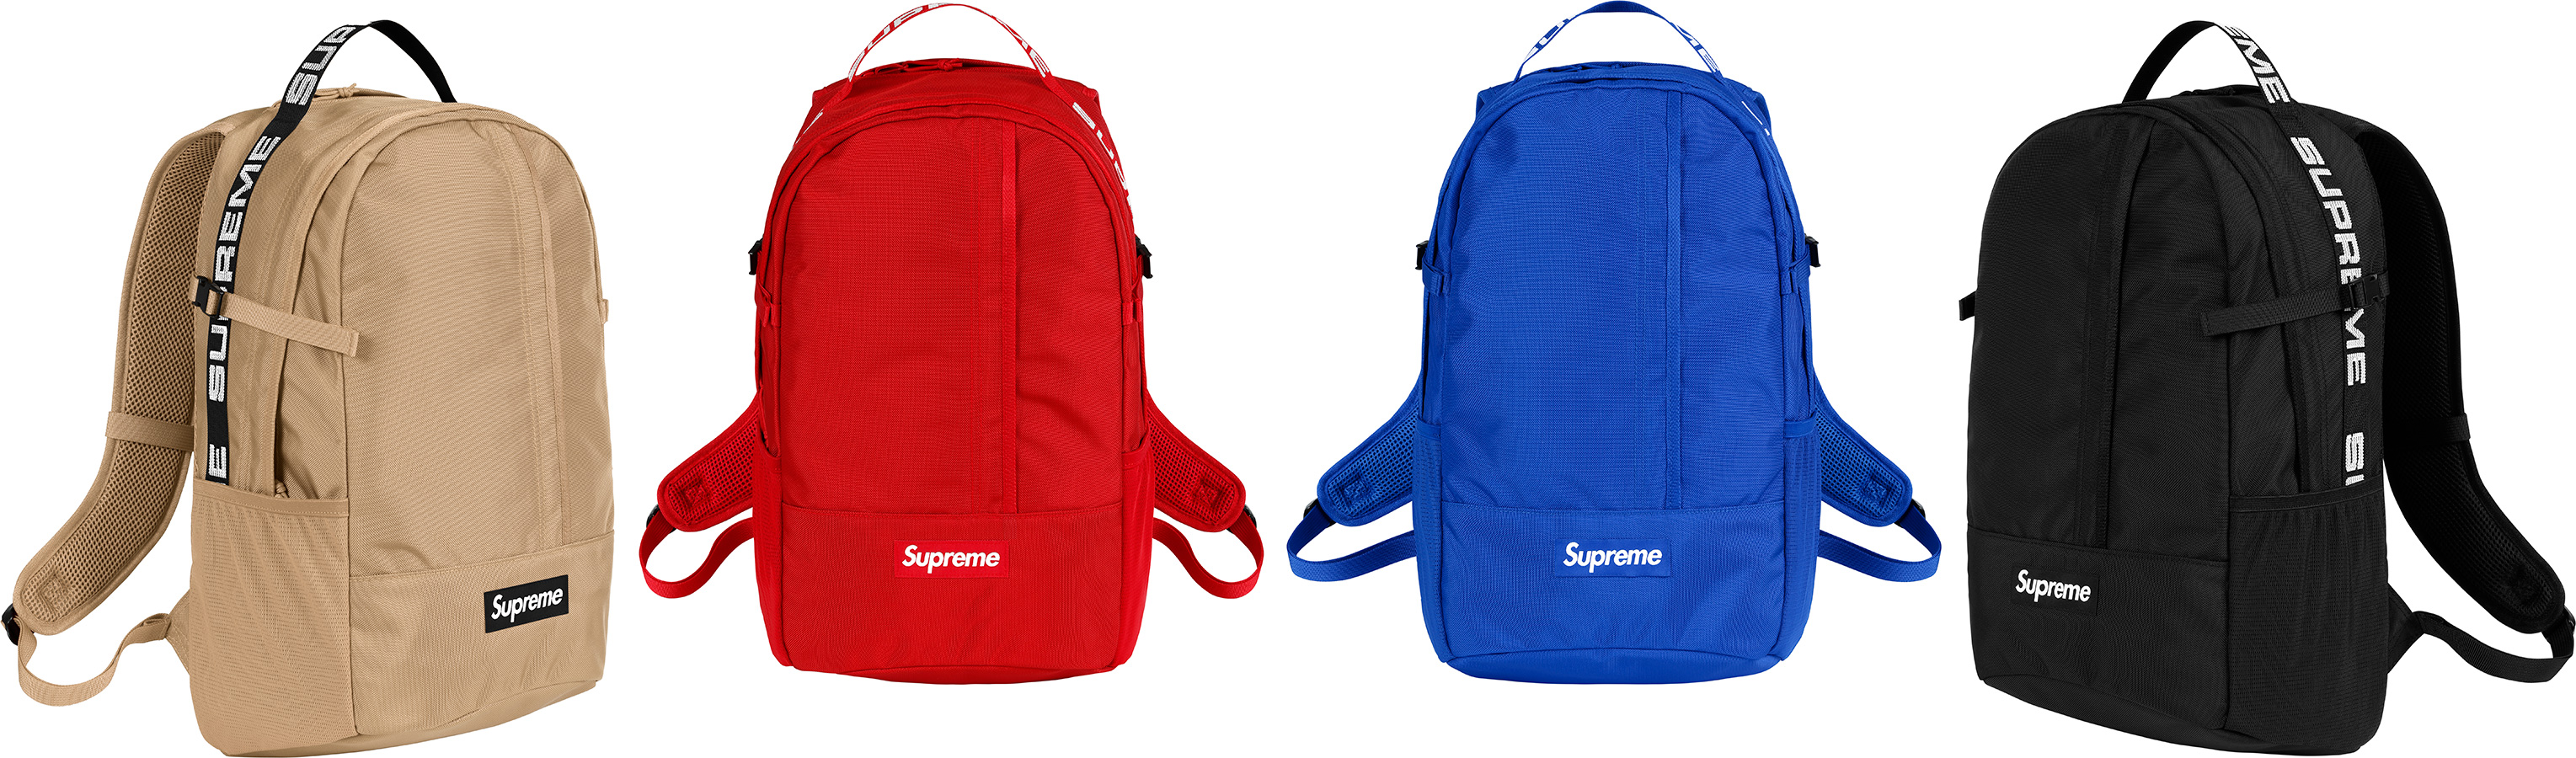 supreme-18ss-spring-summer-backpack